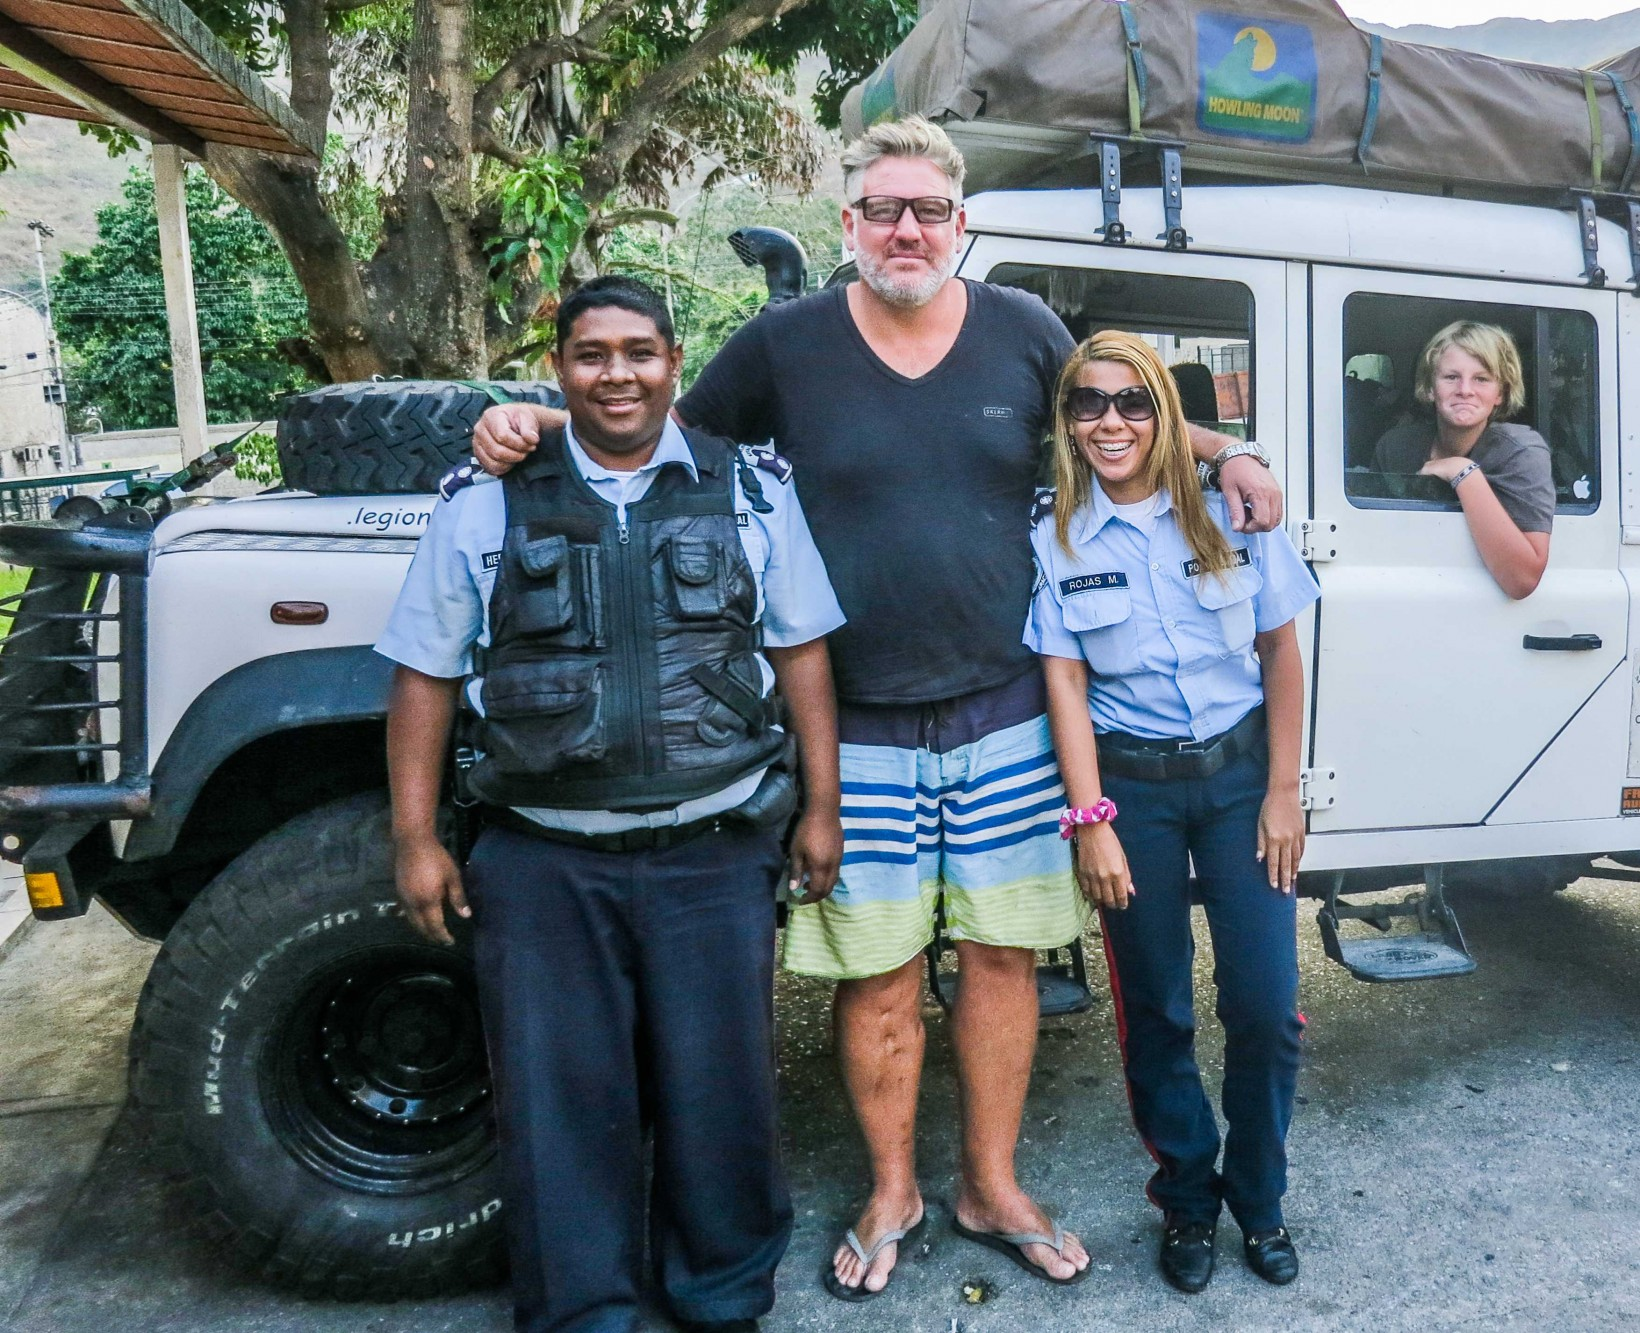 The police who had followed and harrased us for money pose for a photo. We never gave them a cent.